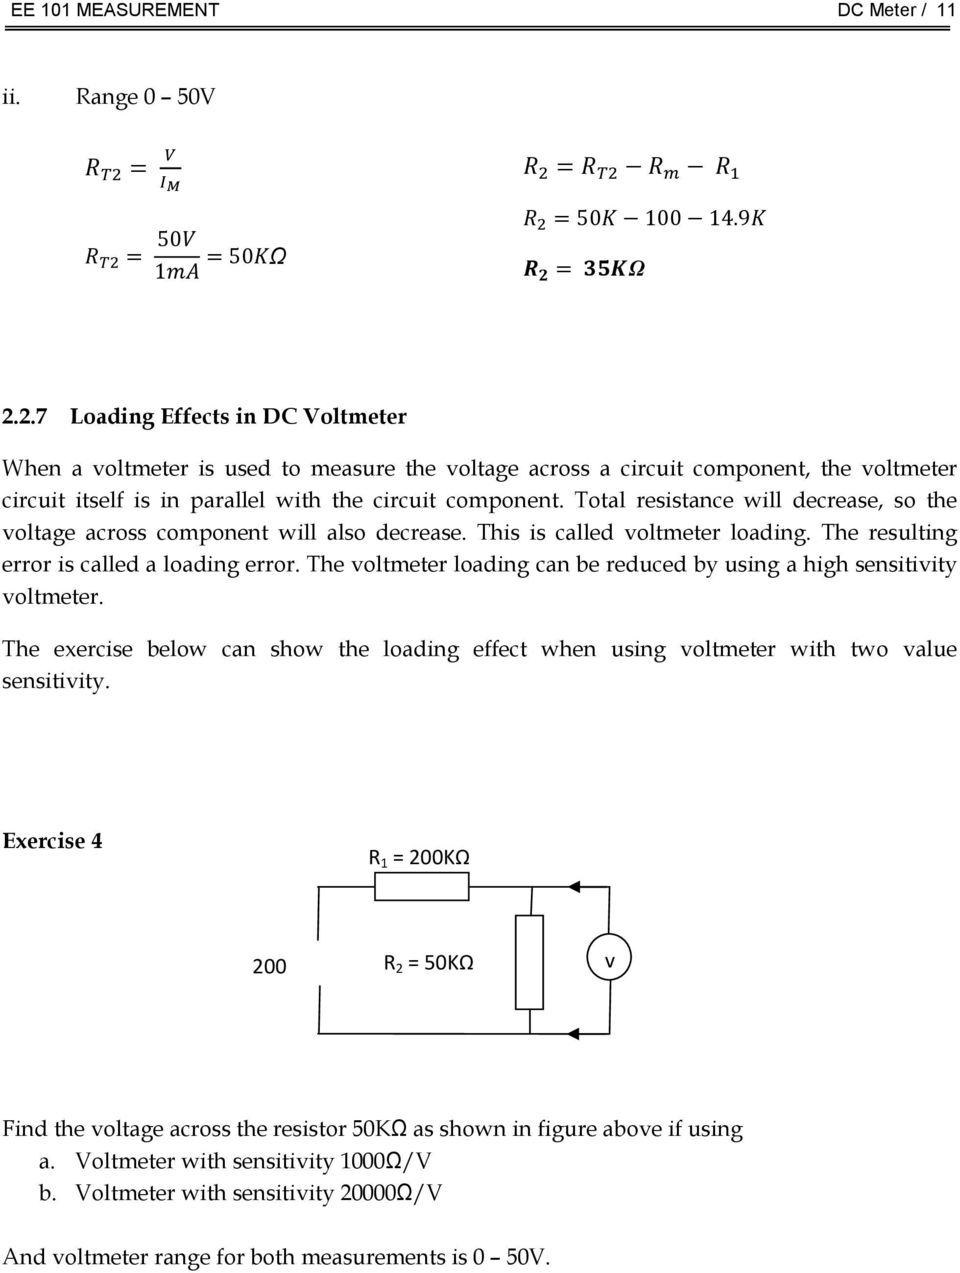 Chapter 2 Dc Meters Pdf Motor Circuit Protector Symbol Http Wwwallaboutcircuitscom Total Resistance Will Decrease So The Voltage Across Component Also This Is